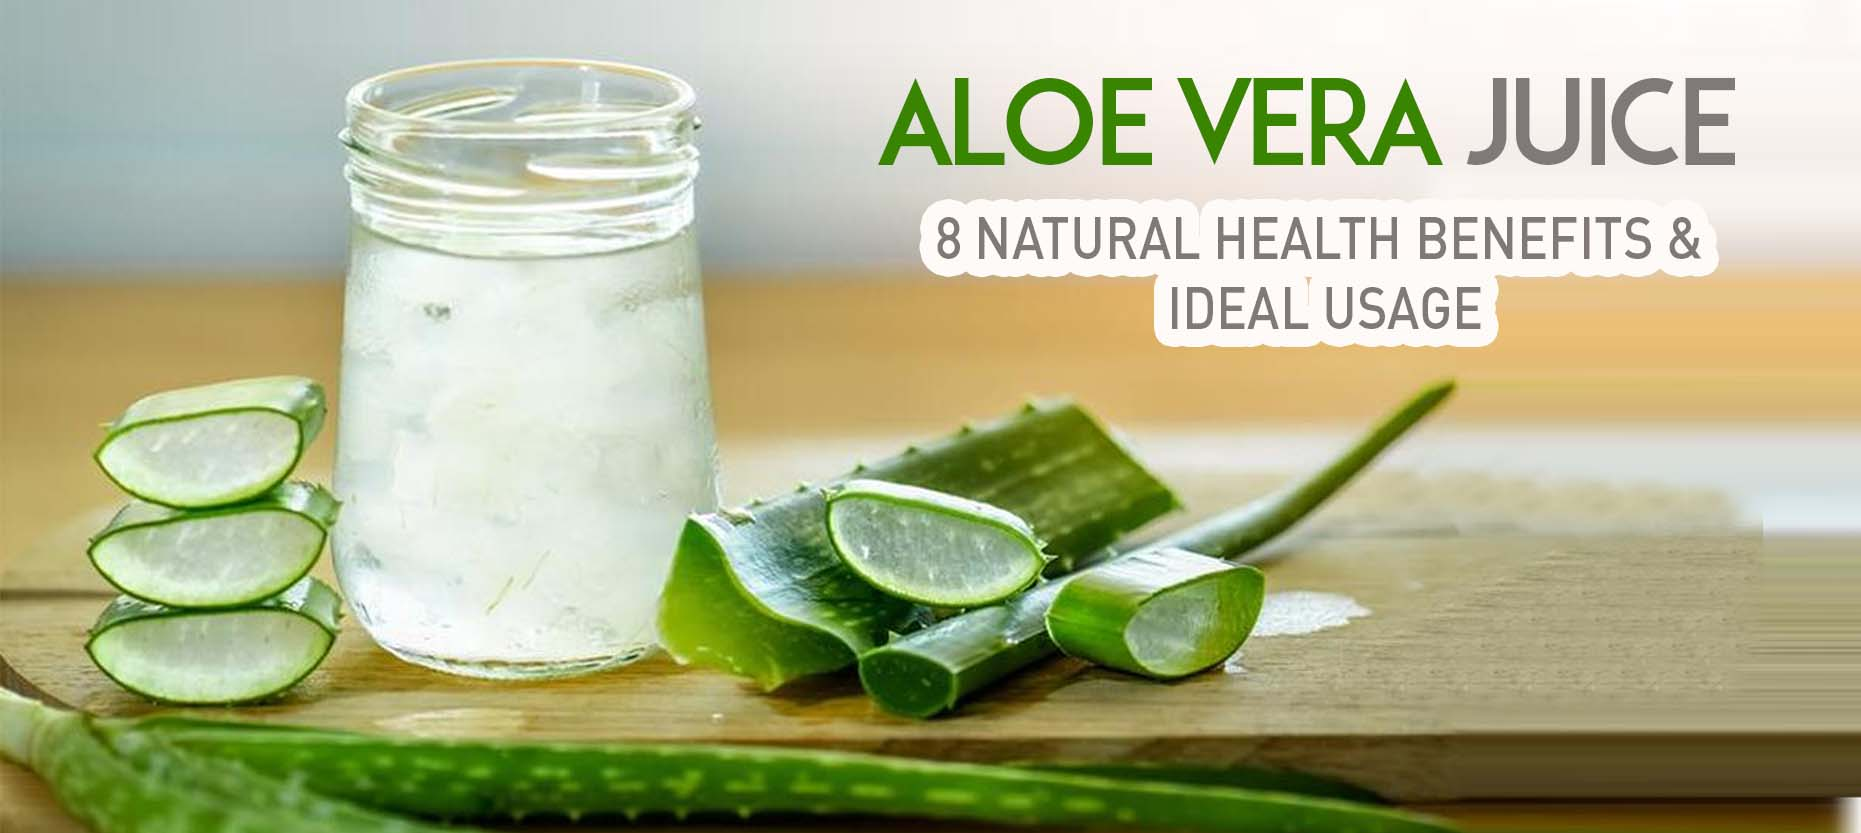 Aloe Vera Juice: 8 Natural Health Benefits & Ideal Usage